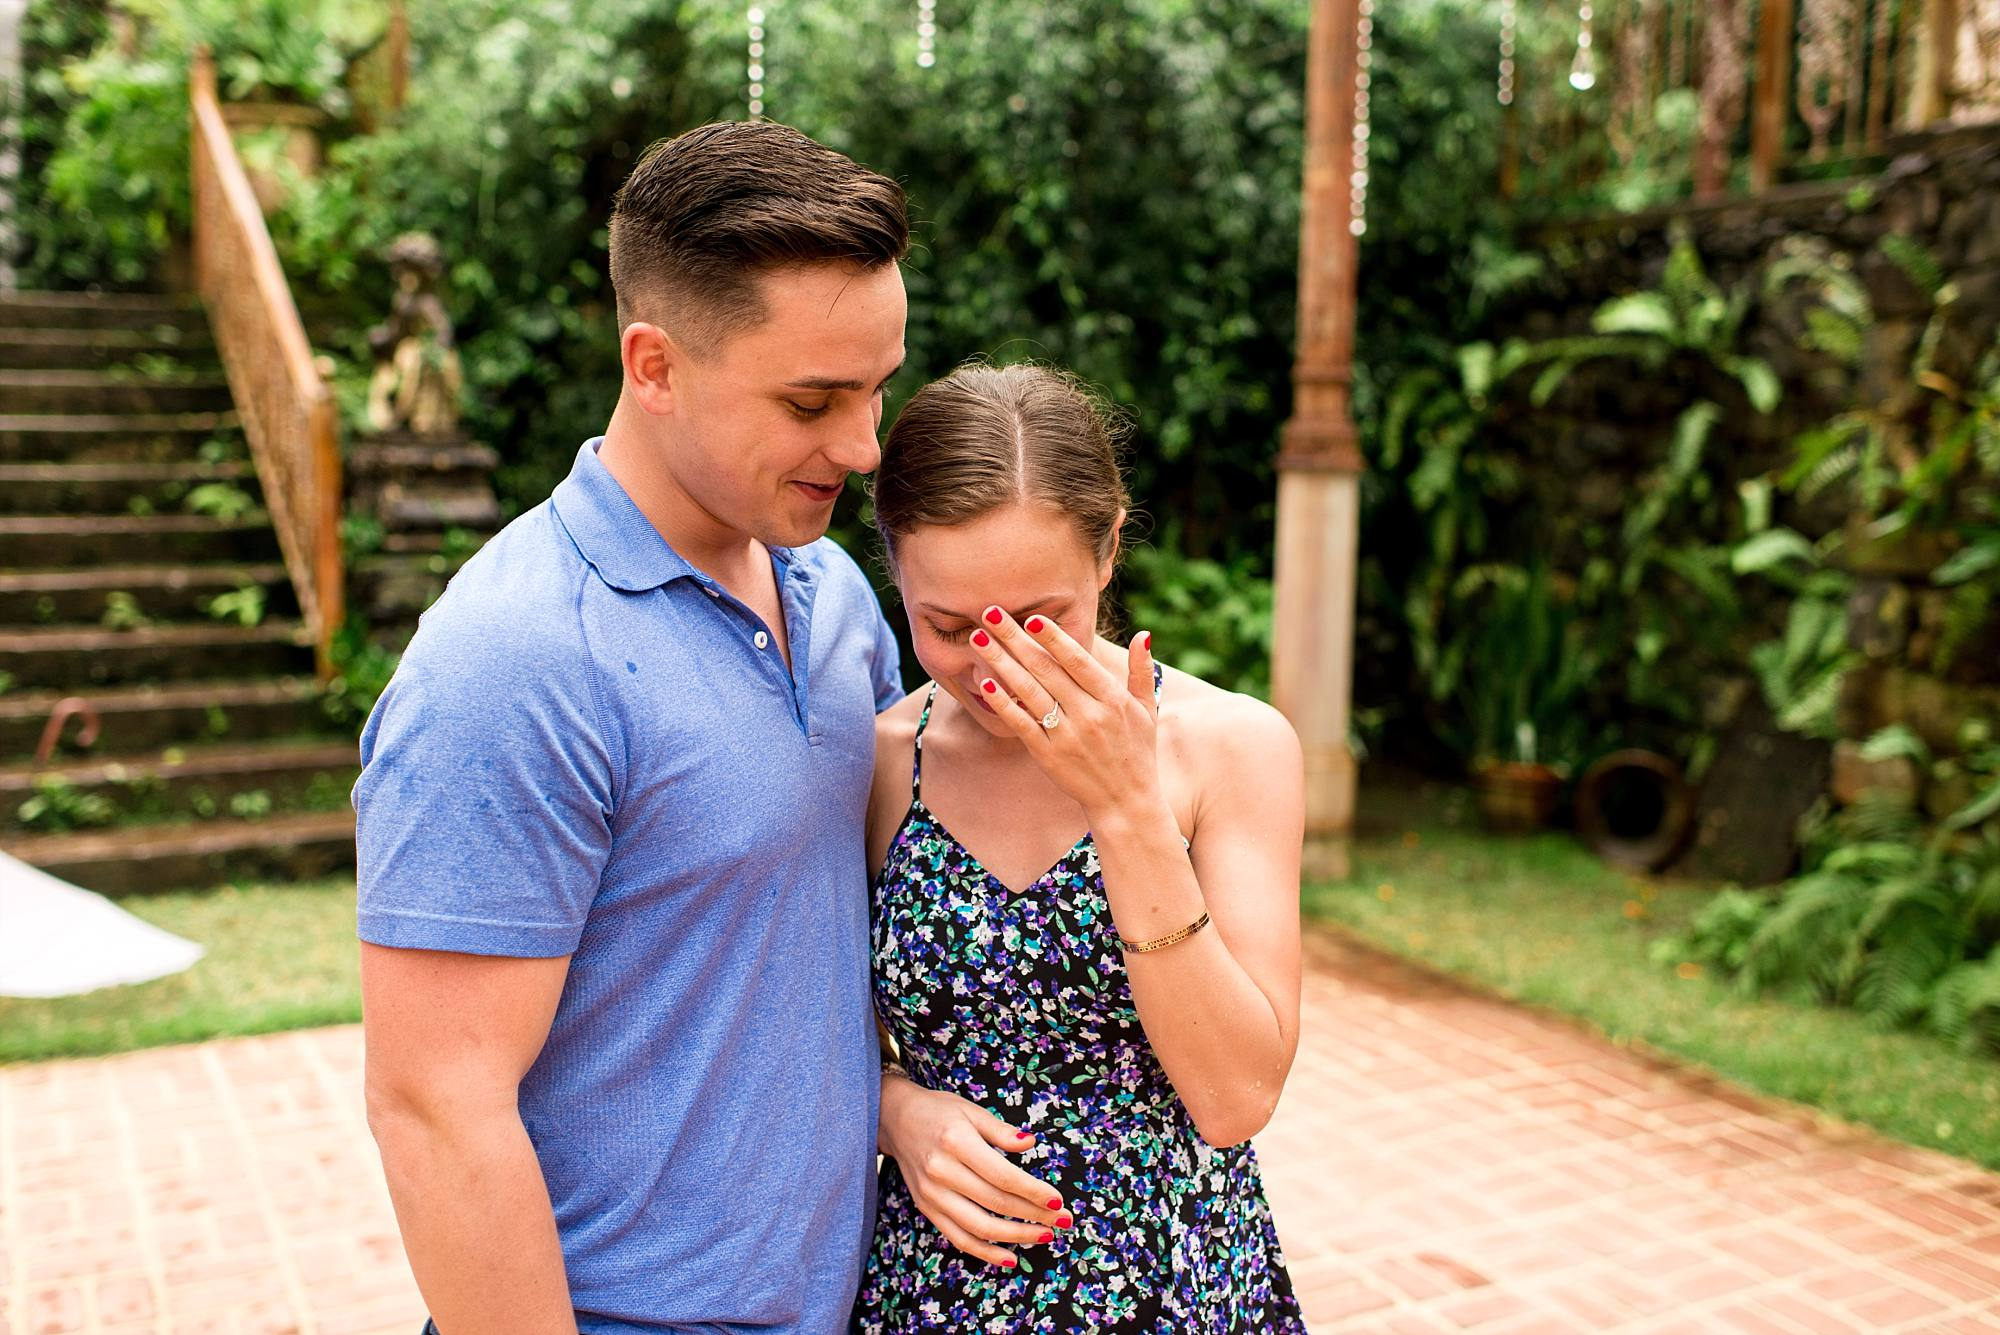 woman touching forehead man holding her, excited to be engaged